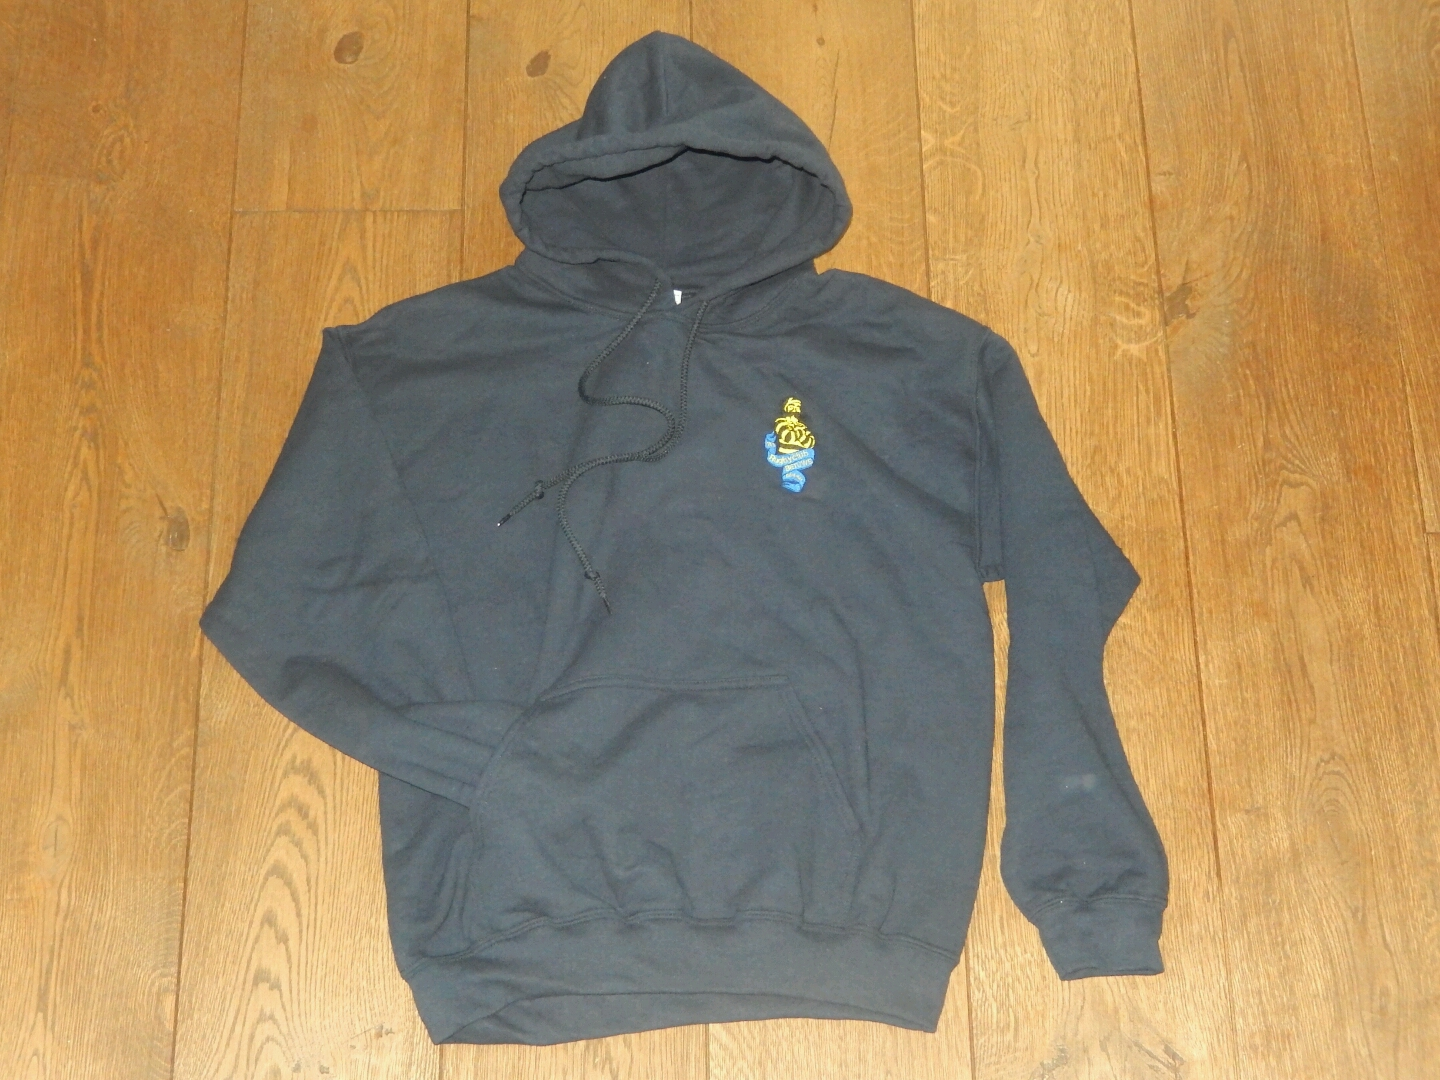 Hooded sweater Rugby Club Betuwe blauw